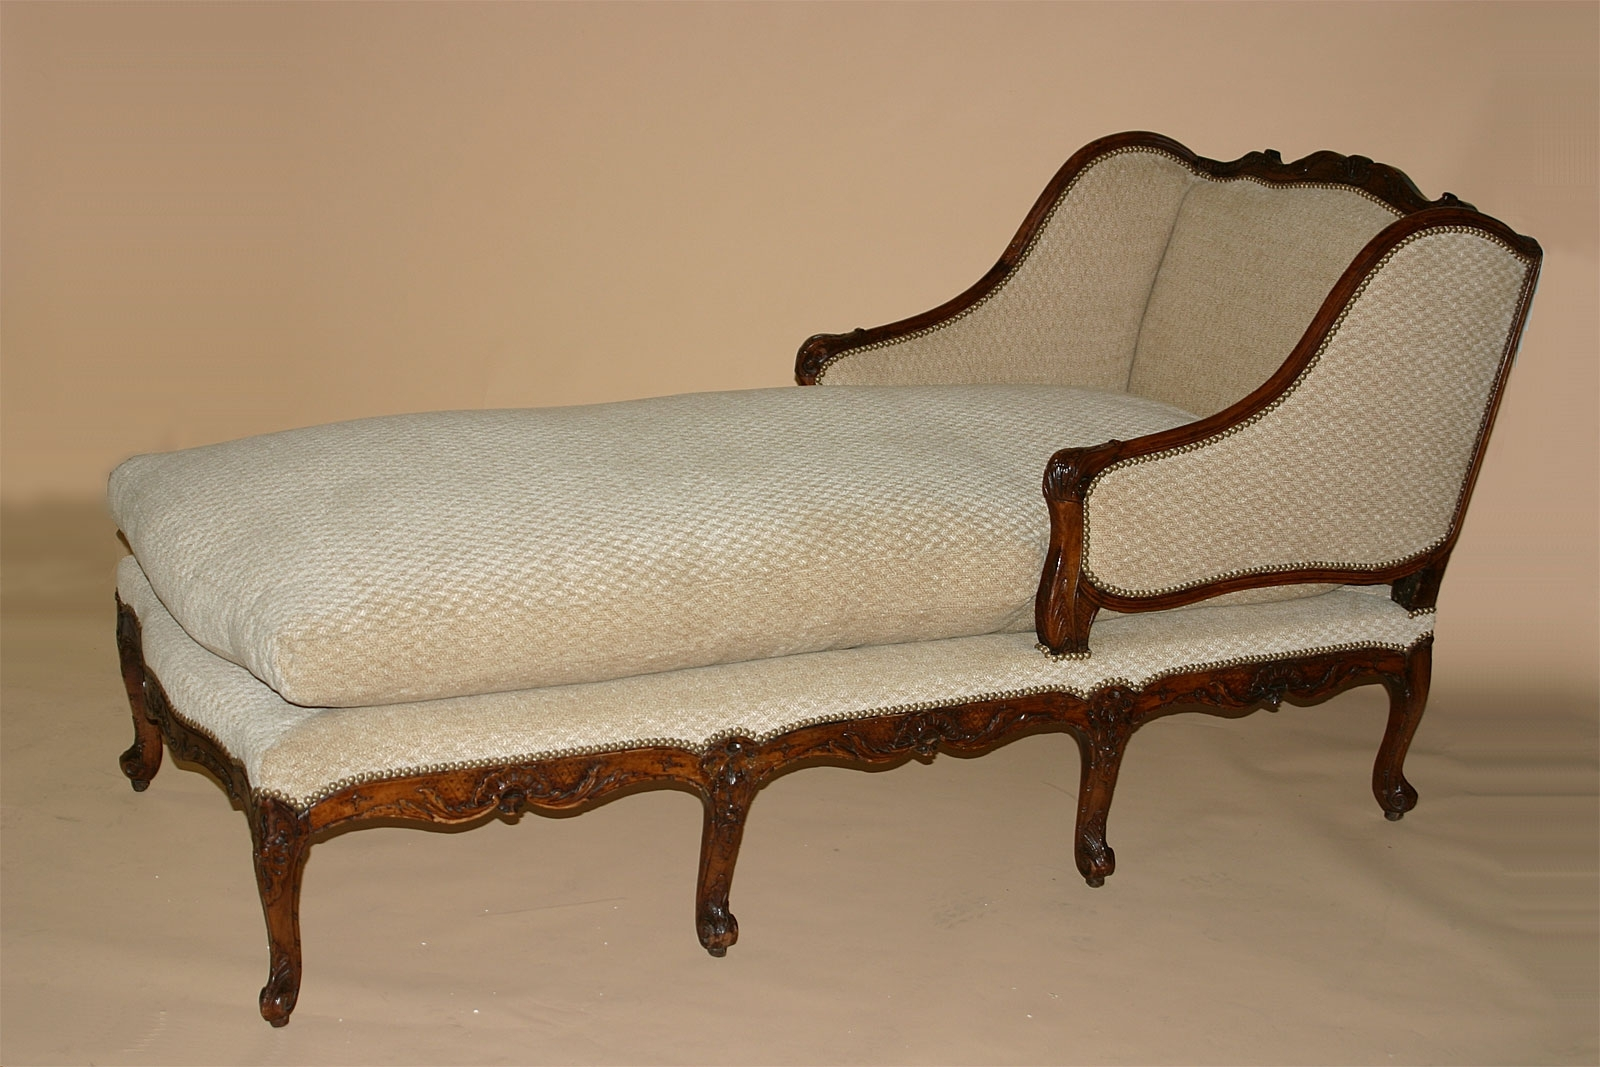 Best And Newest French Chaises Regarding Louis Xv Period Chaise Longue (View 14 of 15)